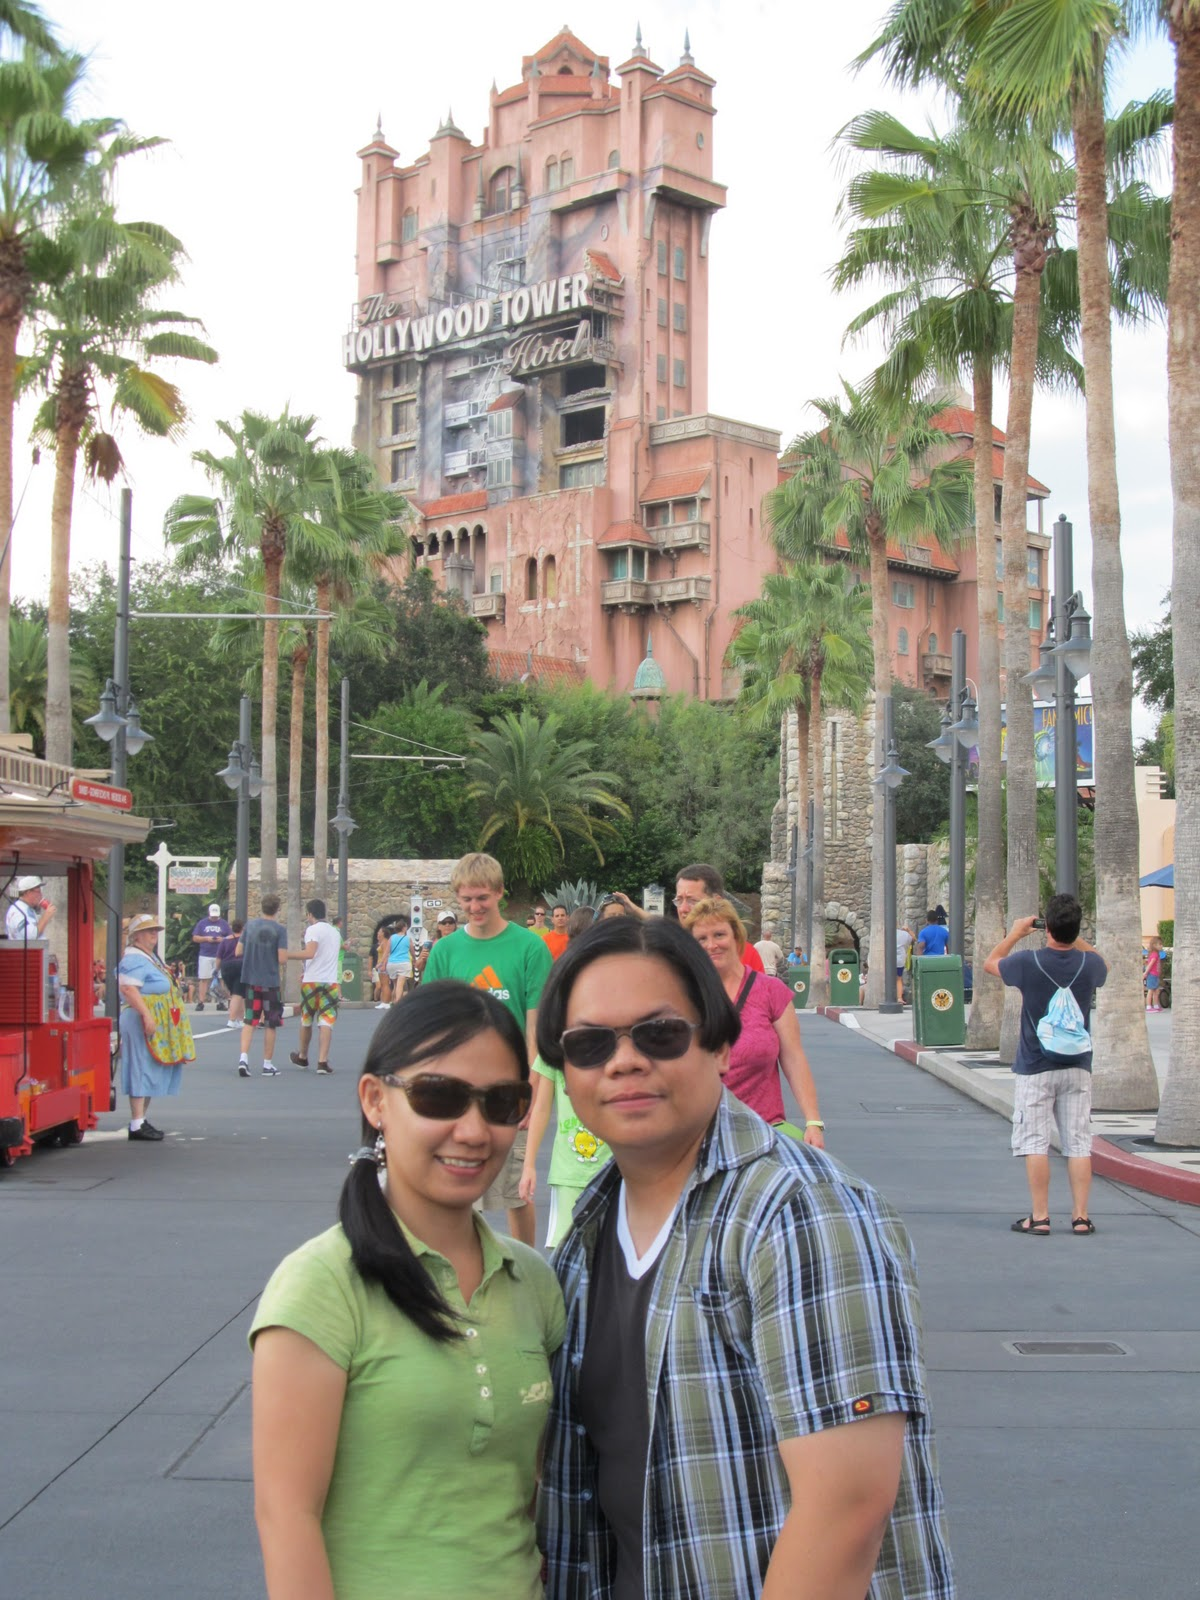 Disney Hollywood Studios Tower of Terror